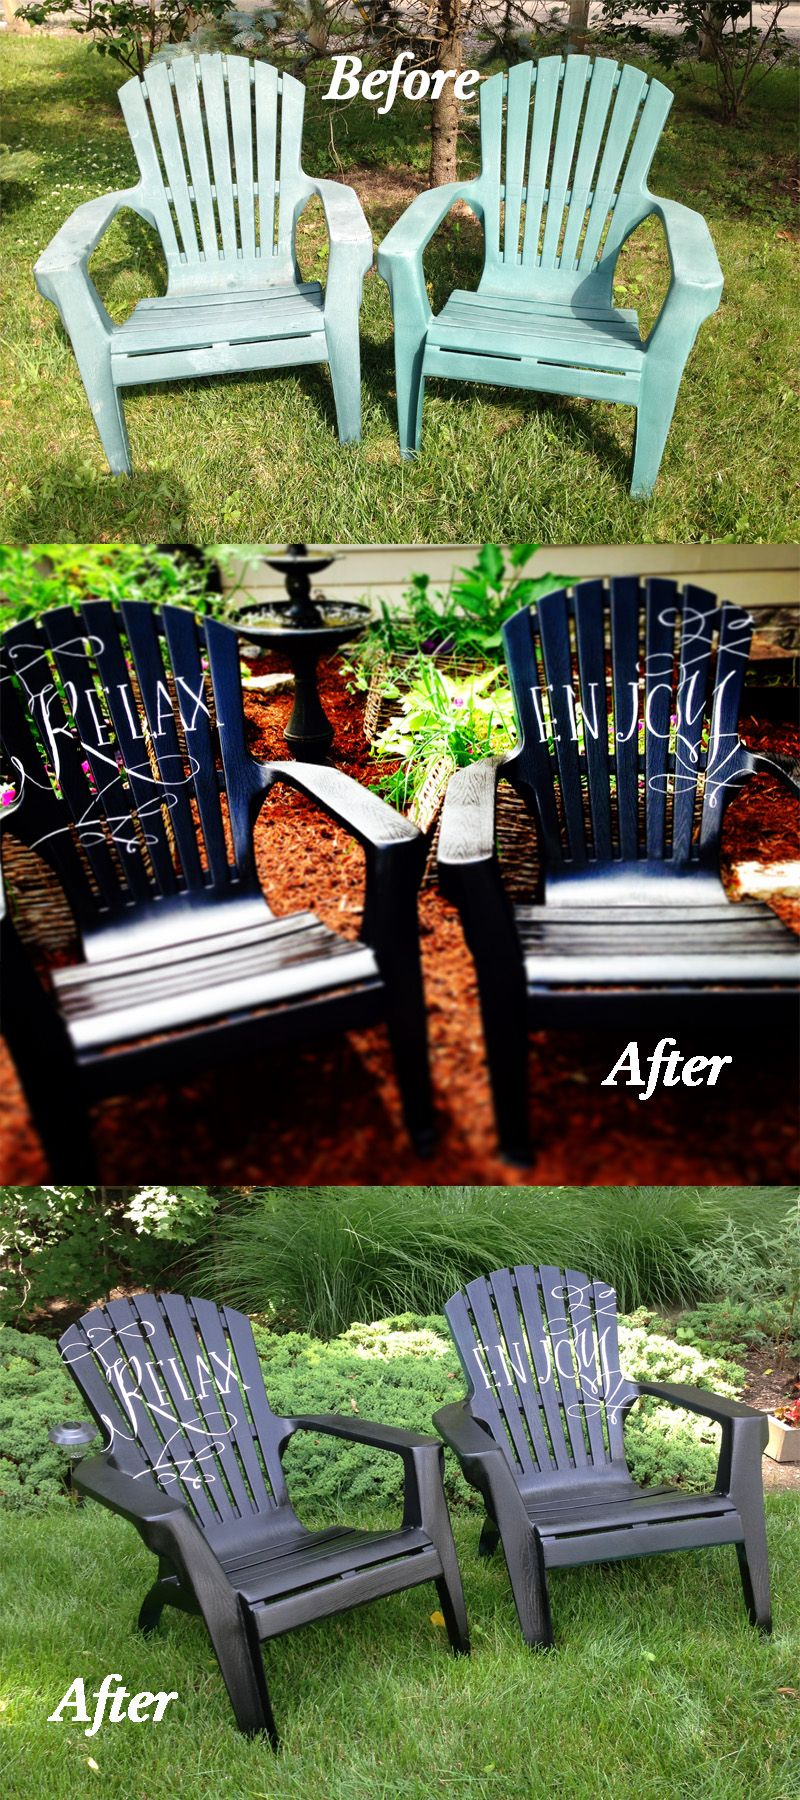 Merveilleux Patio Chair Makeover